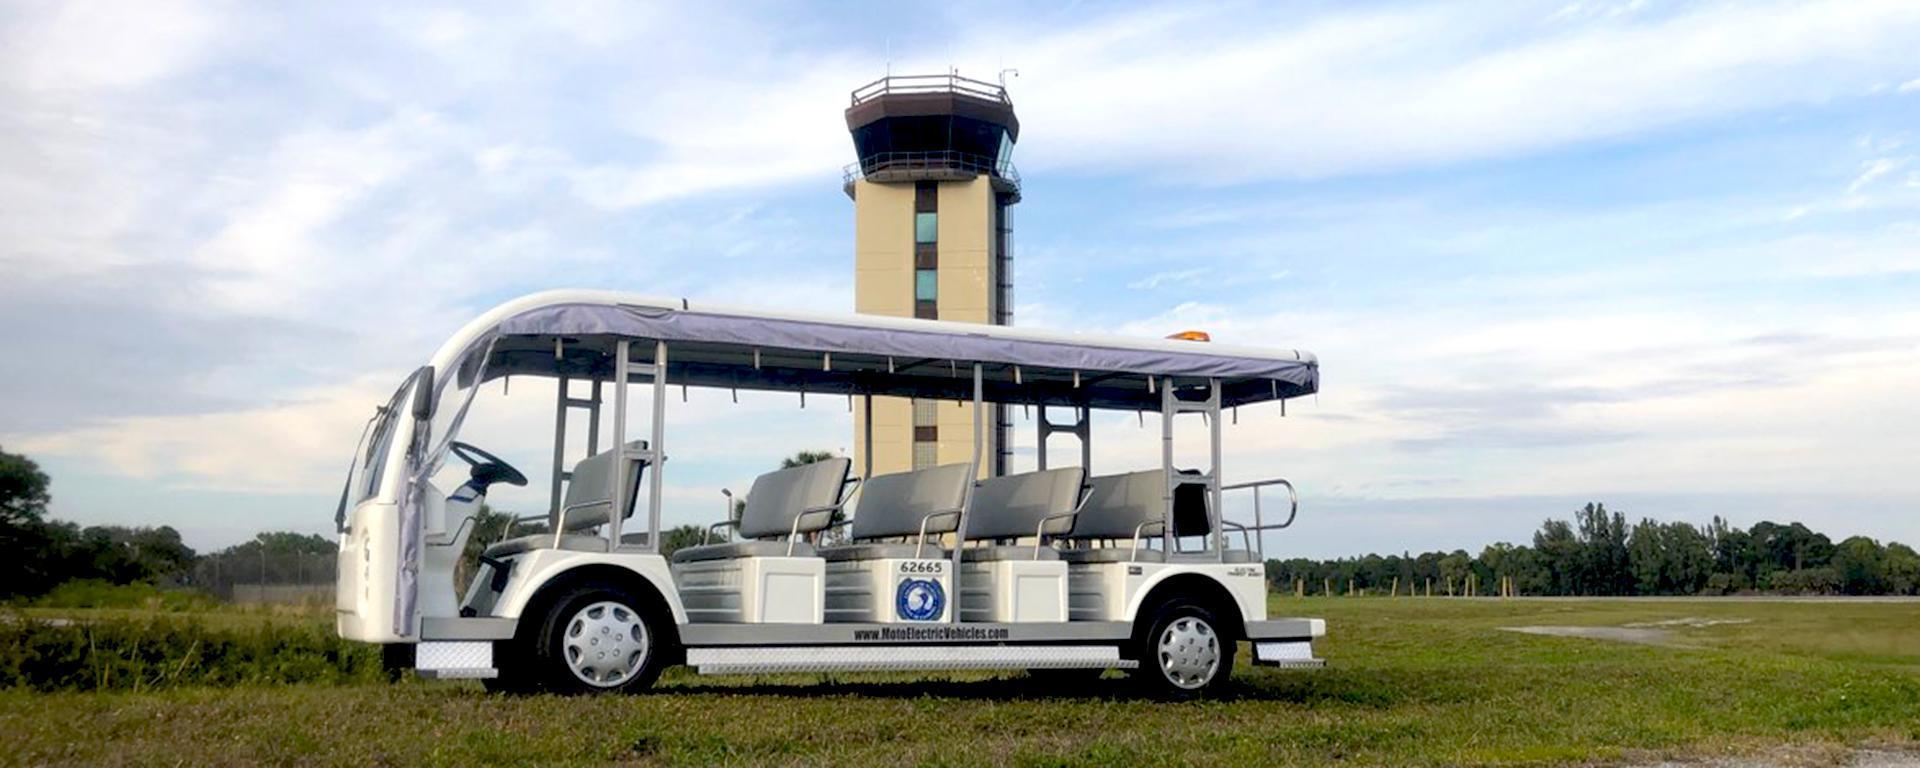 The tram parked near the flight tower at Martin County Airport